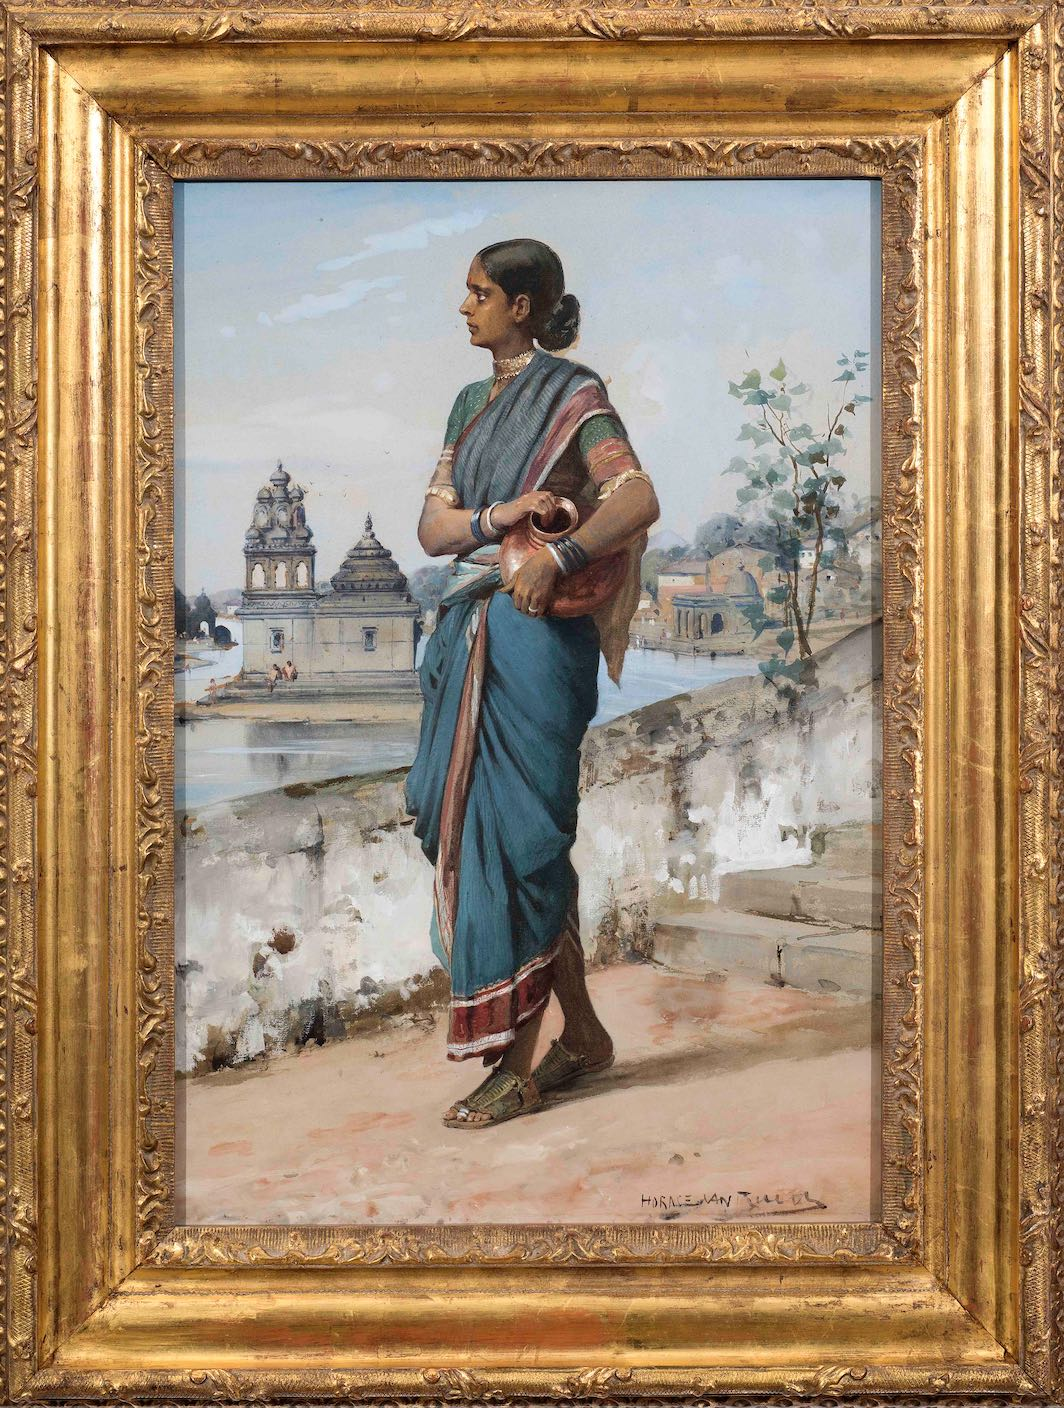 HORACE VAN RUITH (1839-1923) Untitled (Village Girl), c.1880 Gouache on paper Signed lower right 'Horace van Ruith' 53.1 x 37 cm 20 7/8 x 14 5/8 in PROVENANCE Private German collection